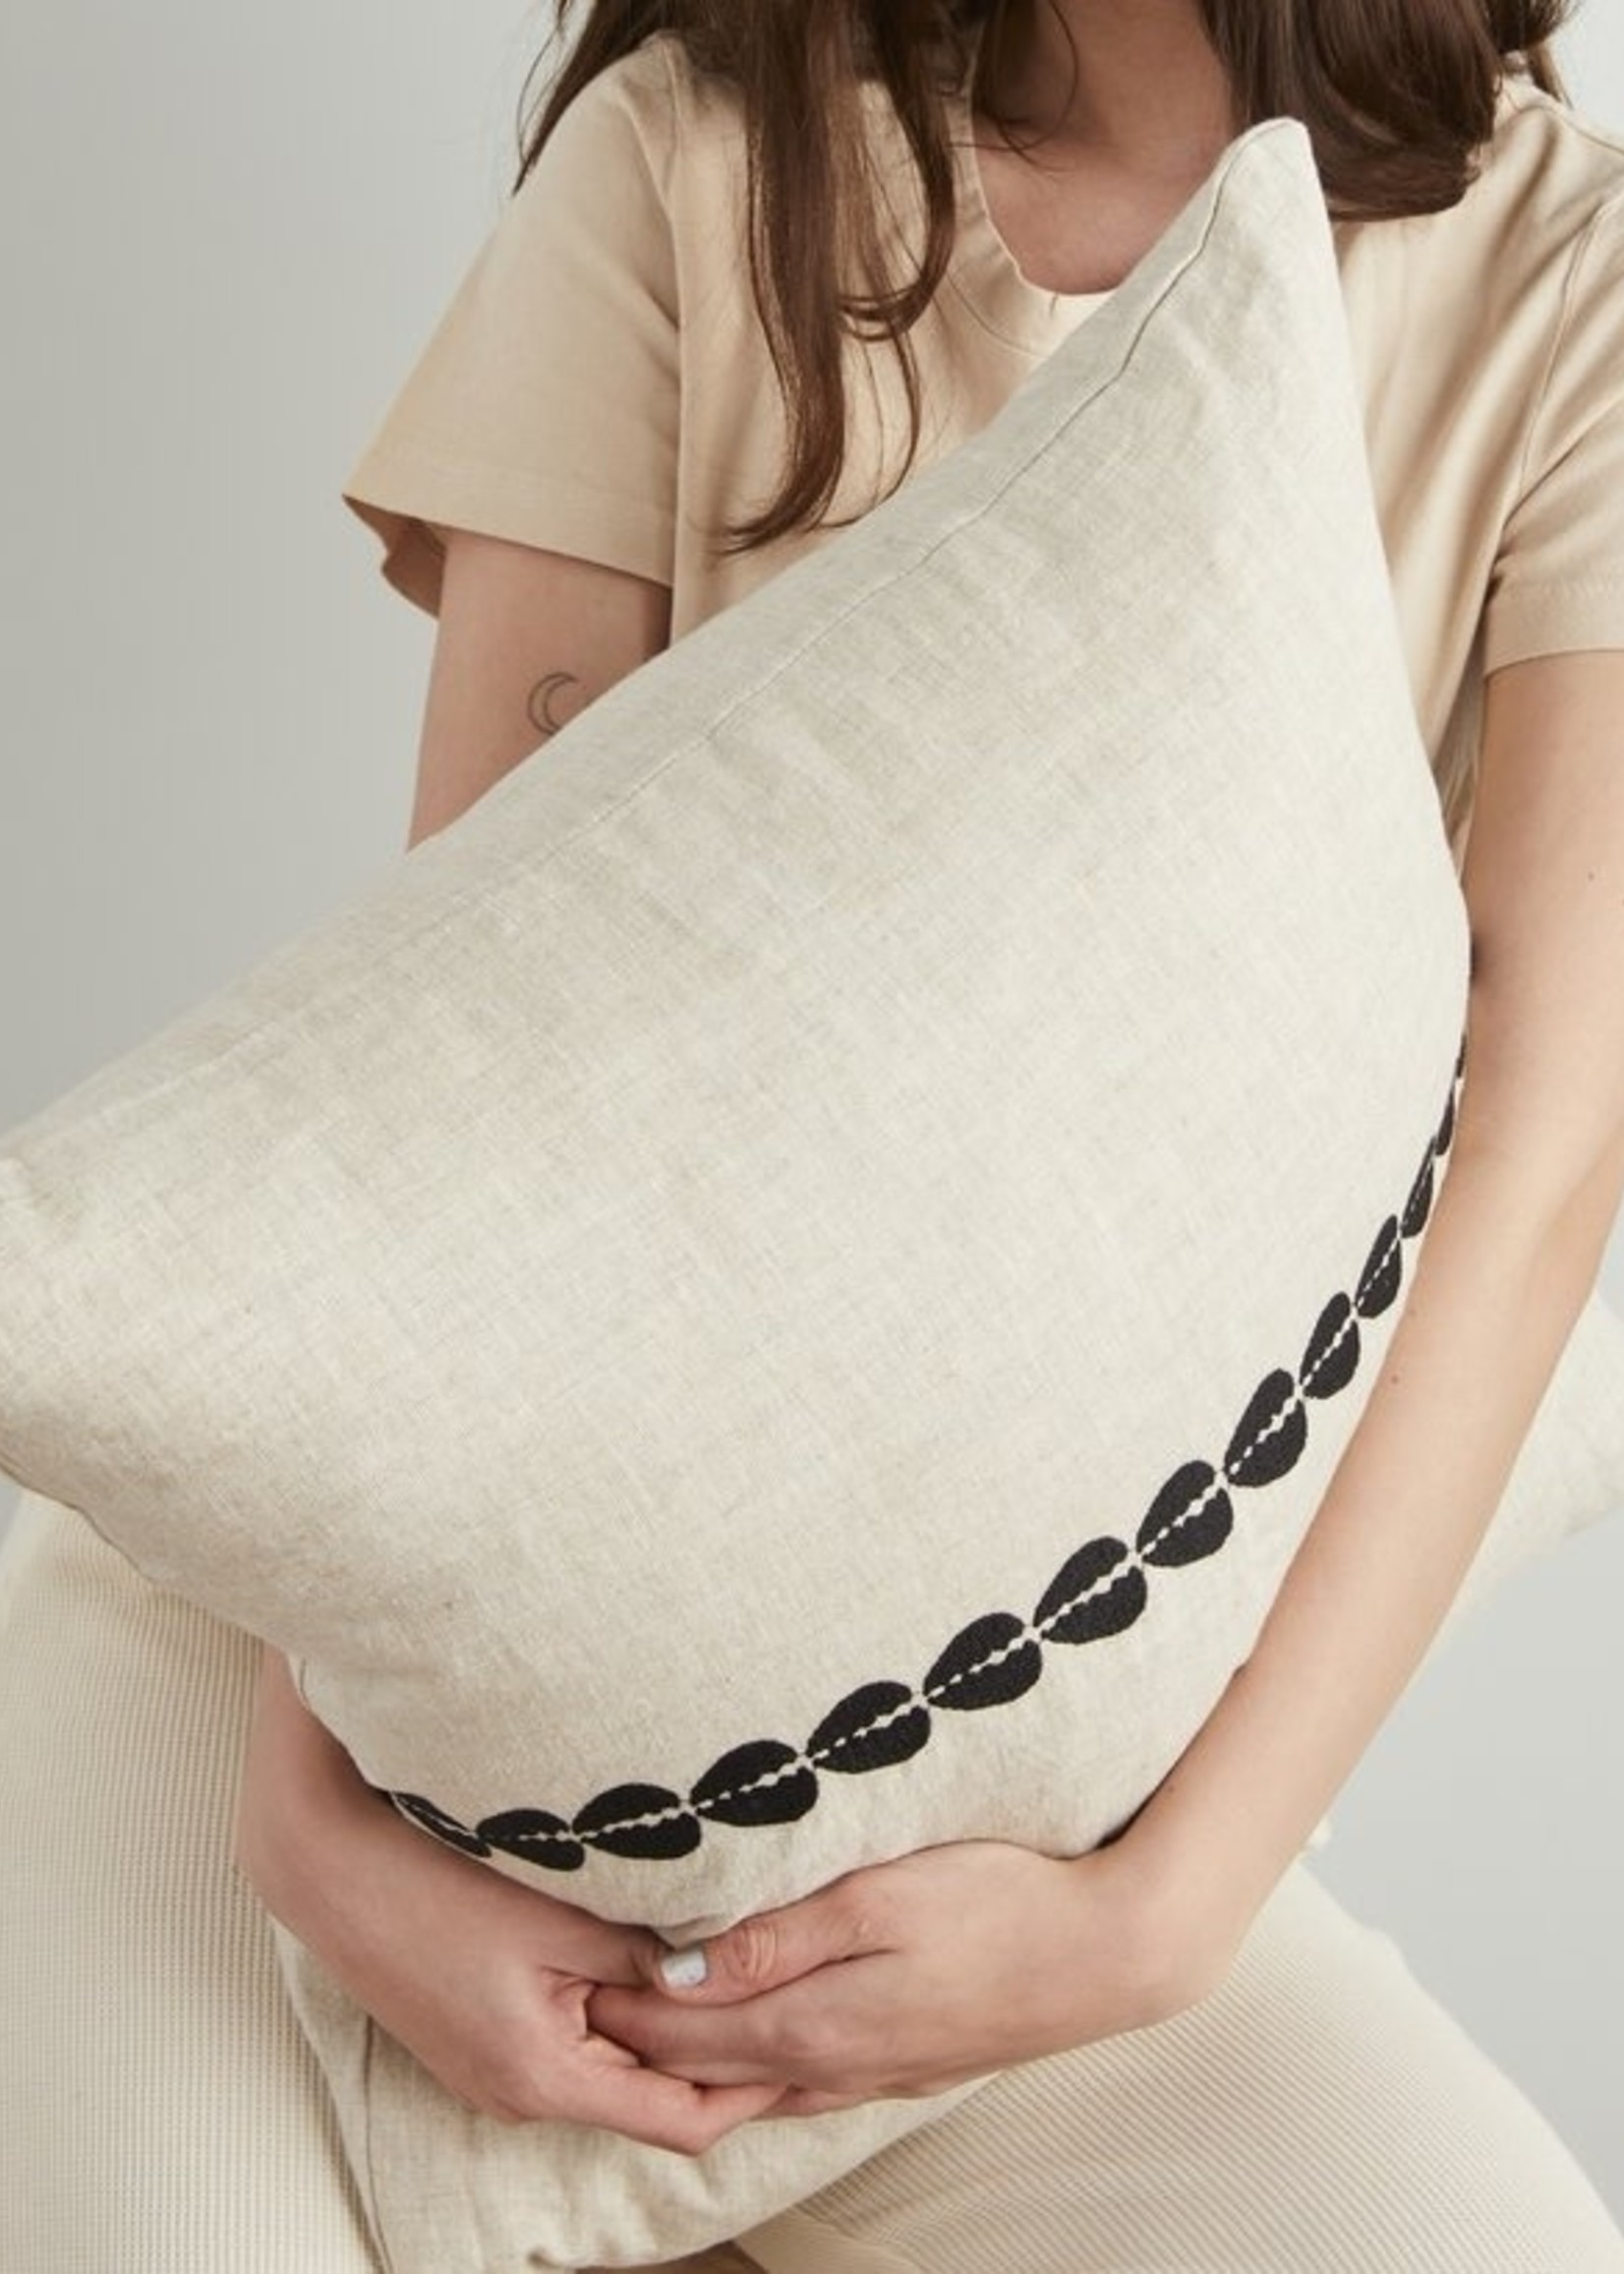 Pillowpia Cowrie Embroidered Pillow in natural